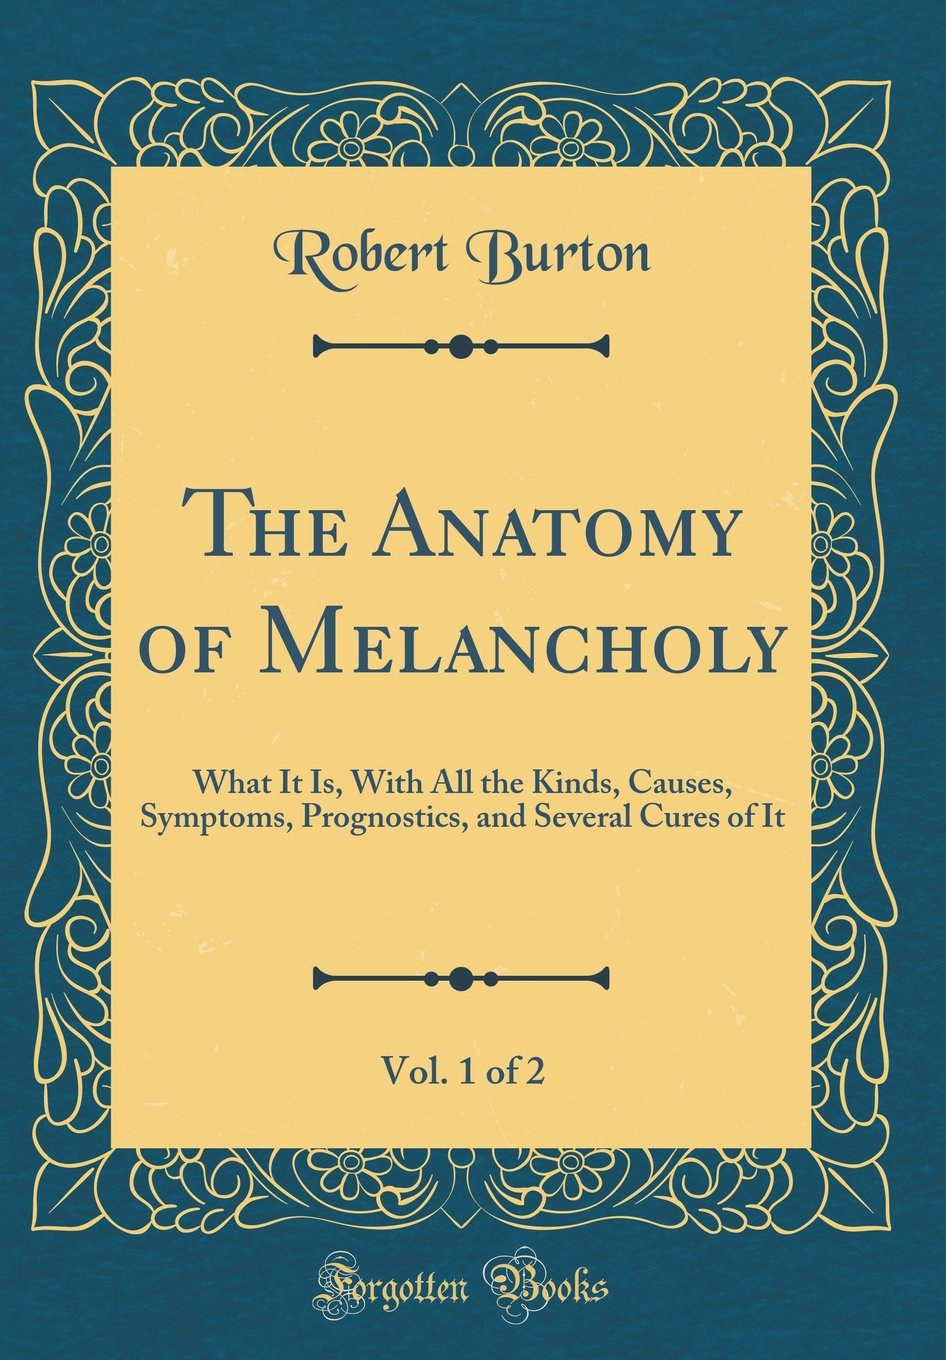 Download The Anatomy of Melancholy, Vol. 1 of 2: What It Is, With All the Kinds, Causes, Symptoms, Prognostics, and Several Cures of It (Classic Reprint) ebook